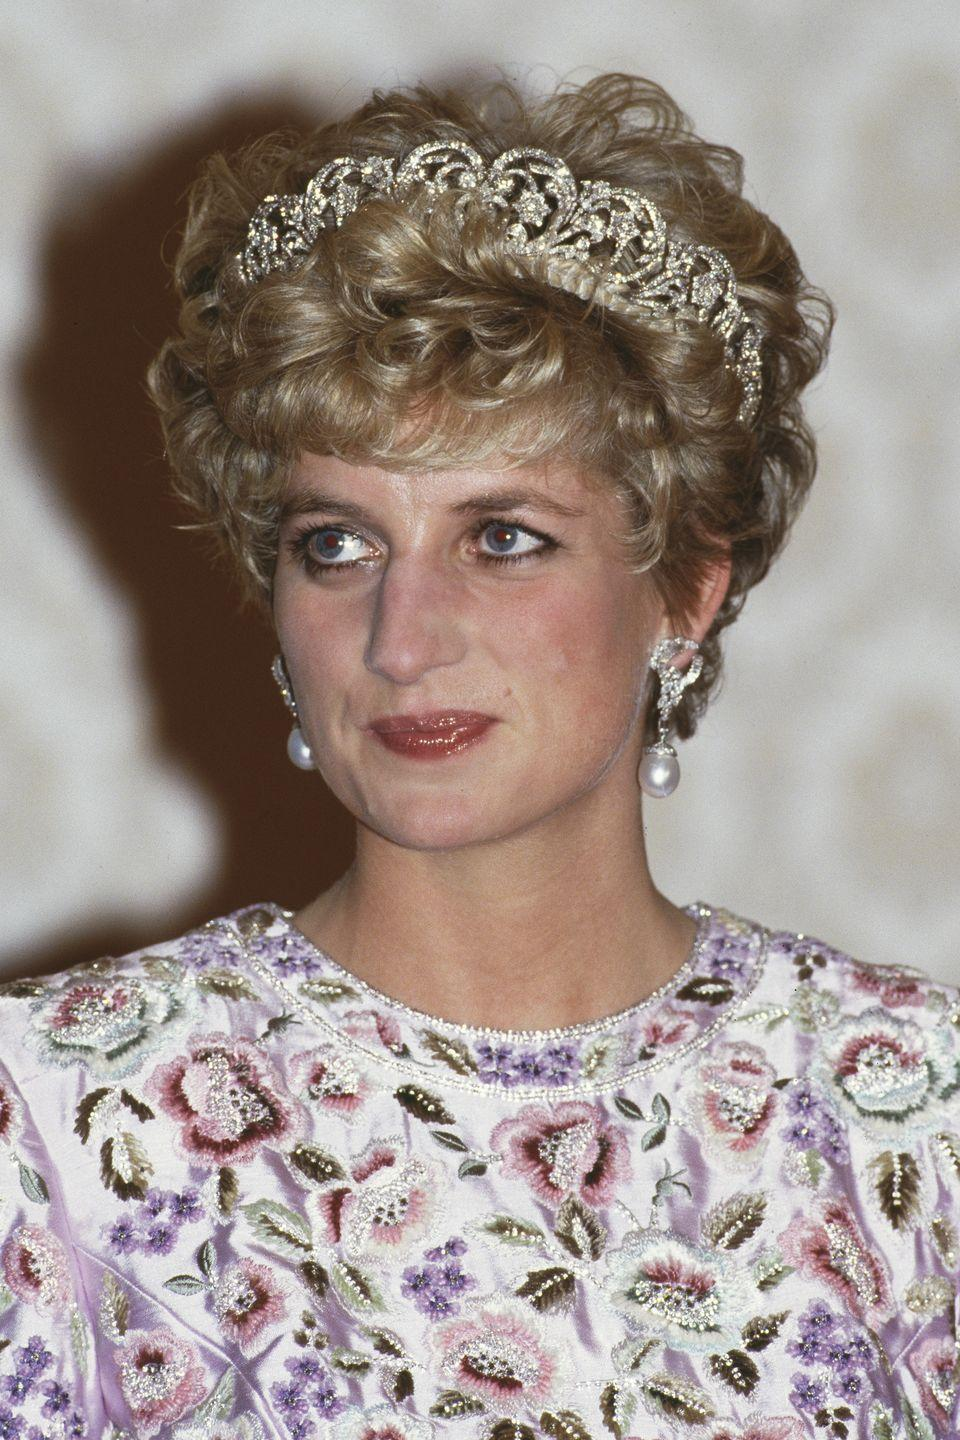 <p>At a state dinner in Seoul, South Korea with curled ends under her diamond tiara. </p>